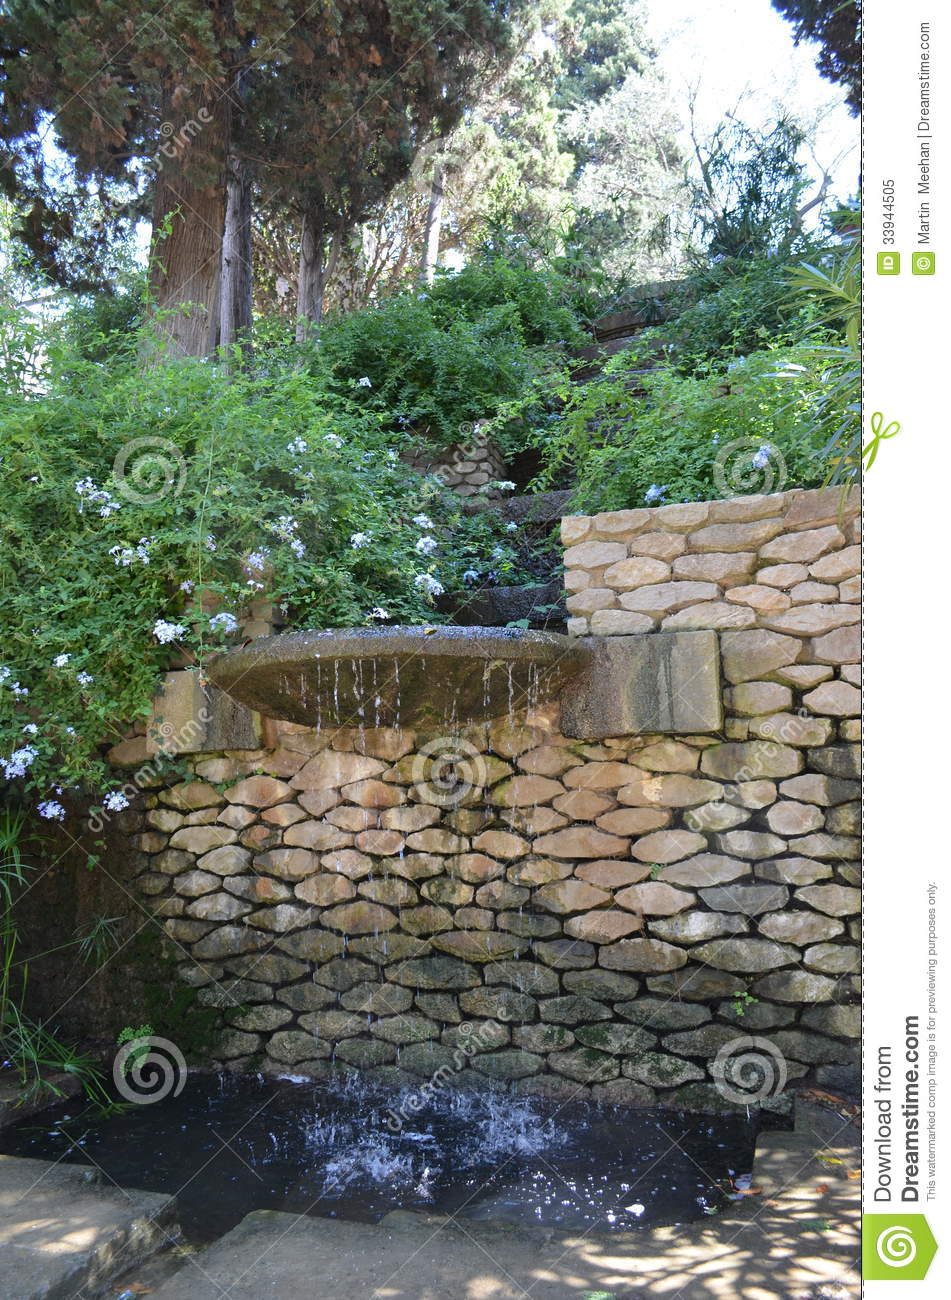 Small urban waterfall royalty free stock photo image for Urban waterfall design